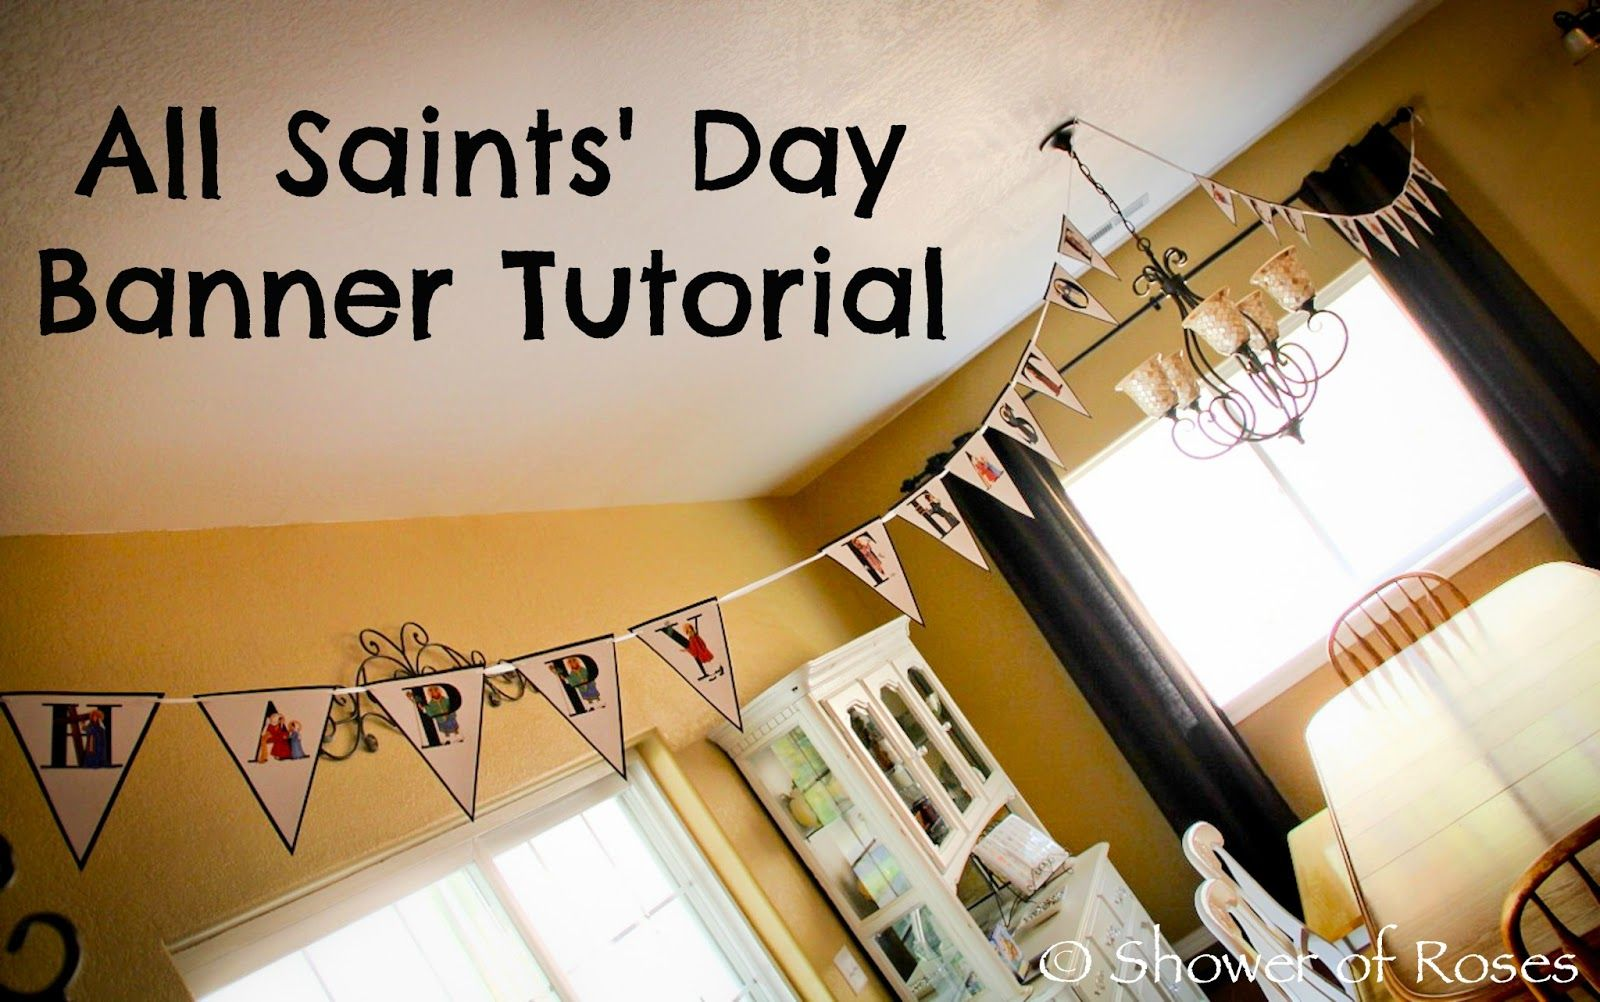 Shower of Roses: All Saints Day Banner Tutorial {including ... - photo#3